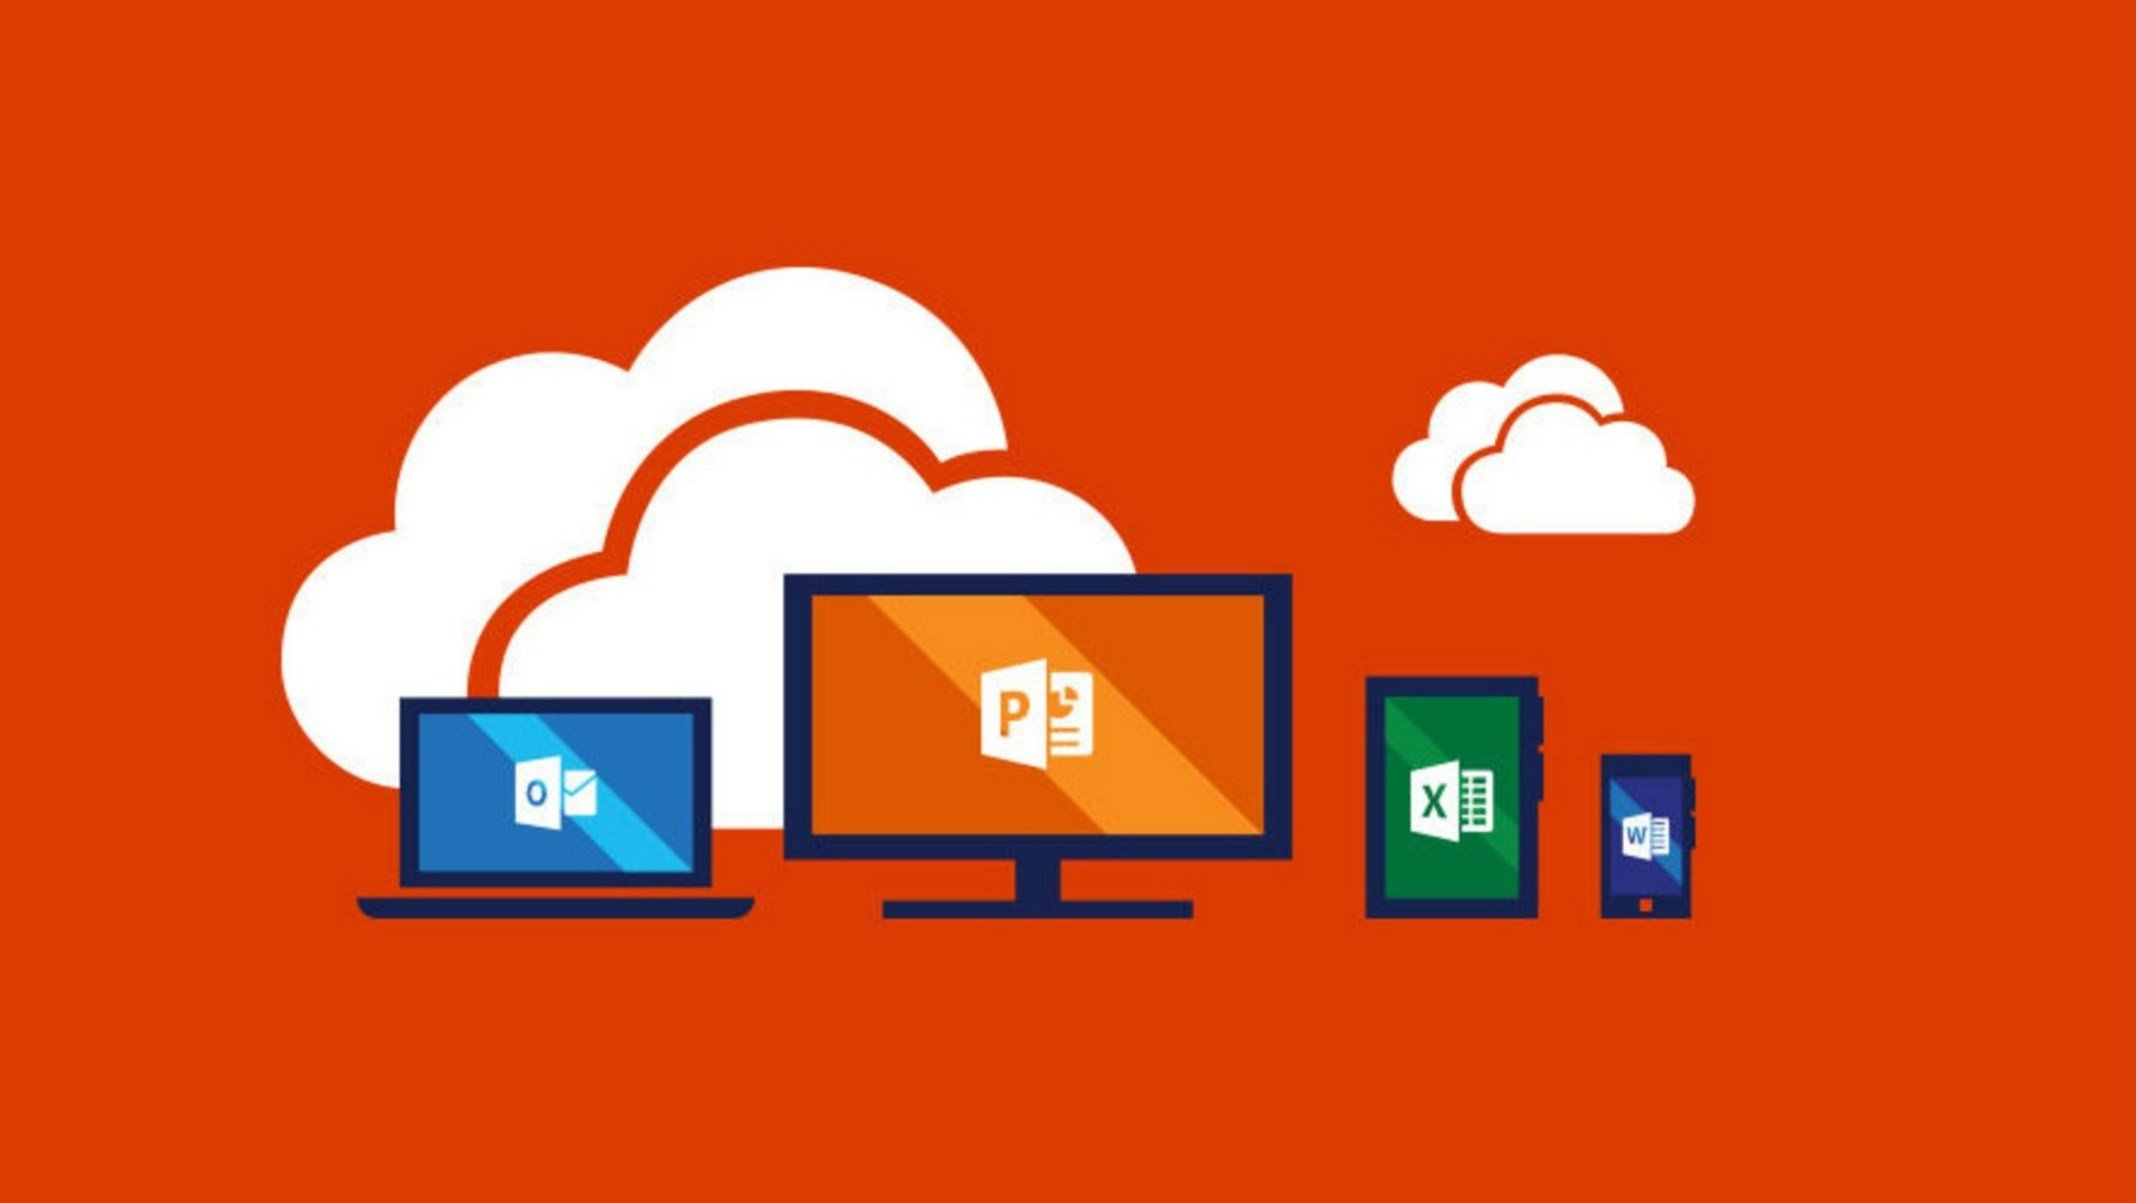 Office 365 Services Hit by Outage, Outlook, Skype, OneDrive